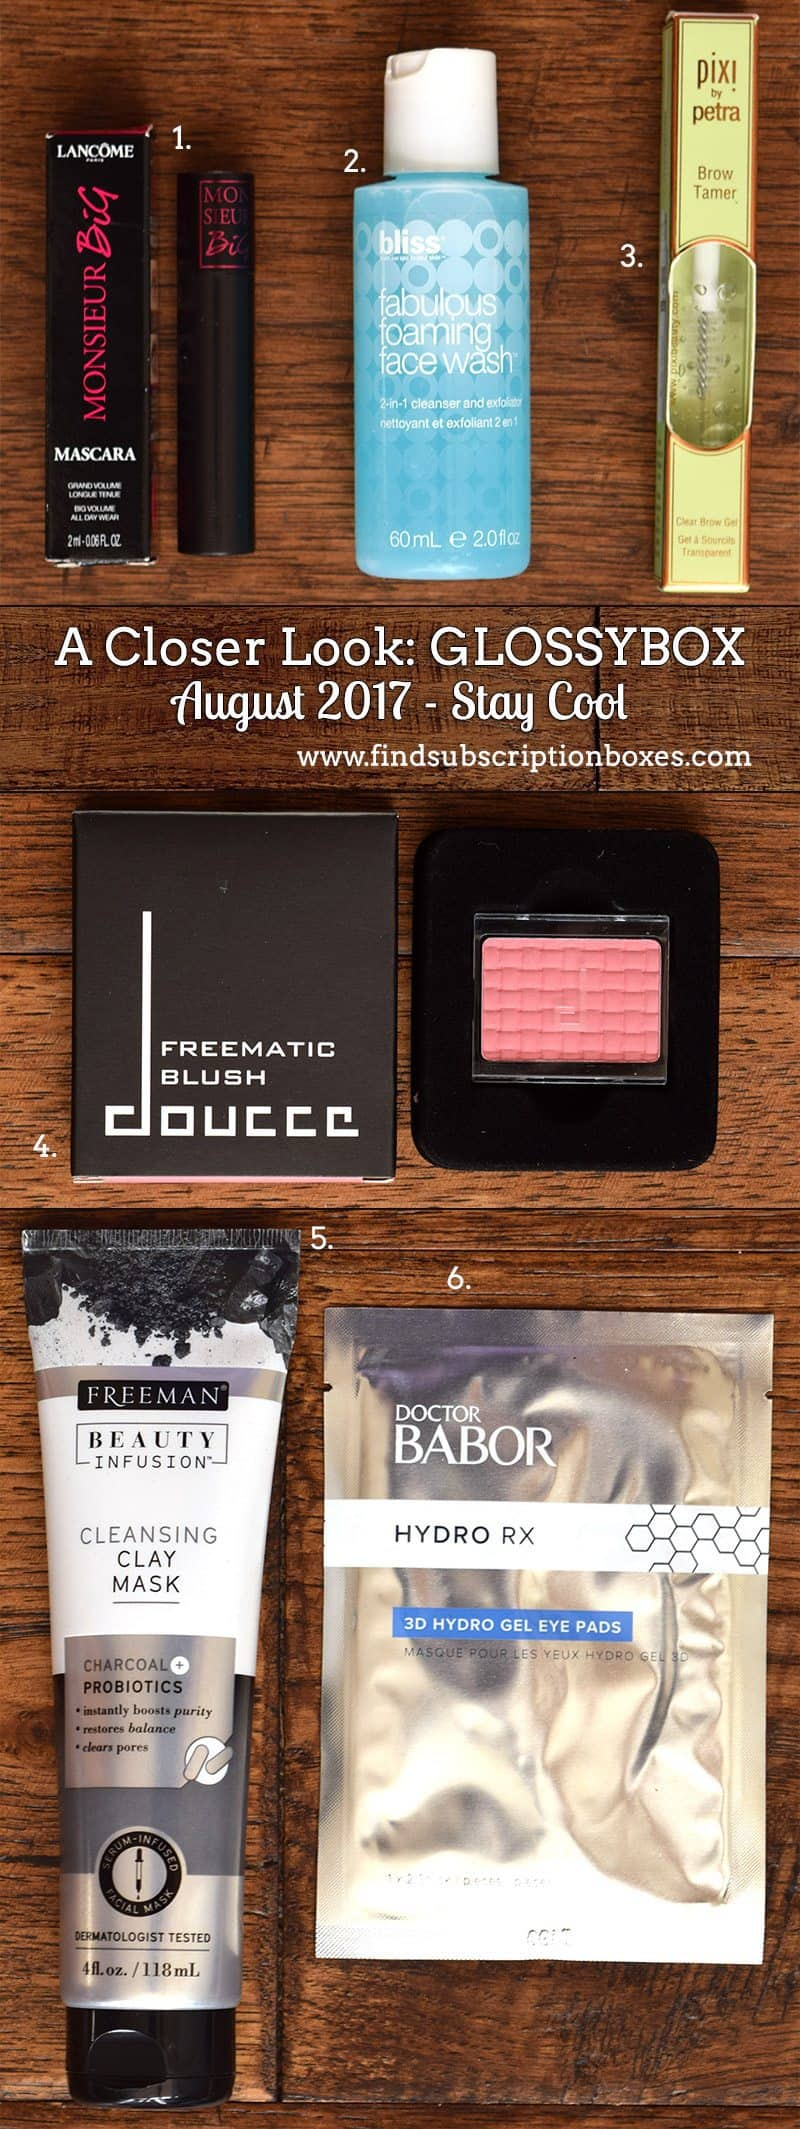 August 2017 GLOSSYBOX Review - Inside the Box